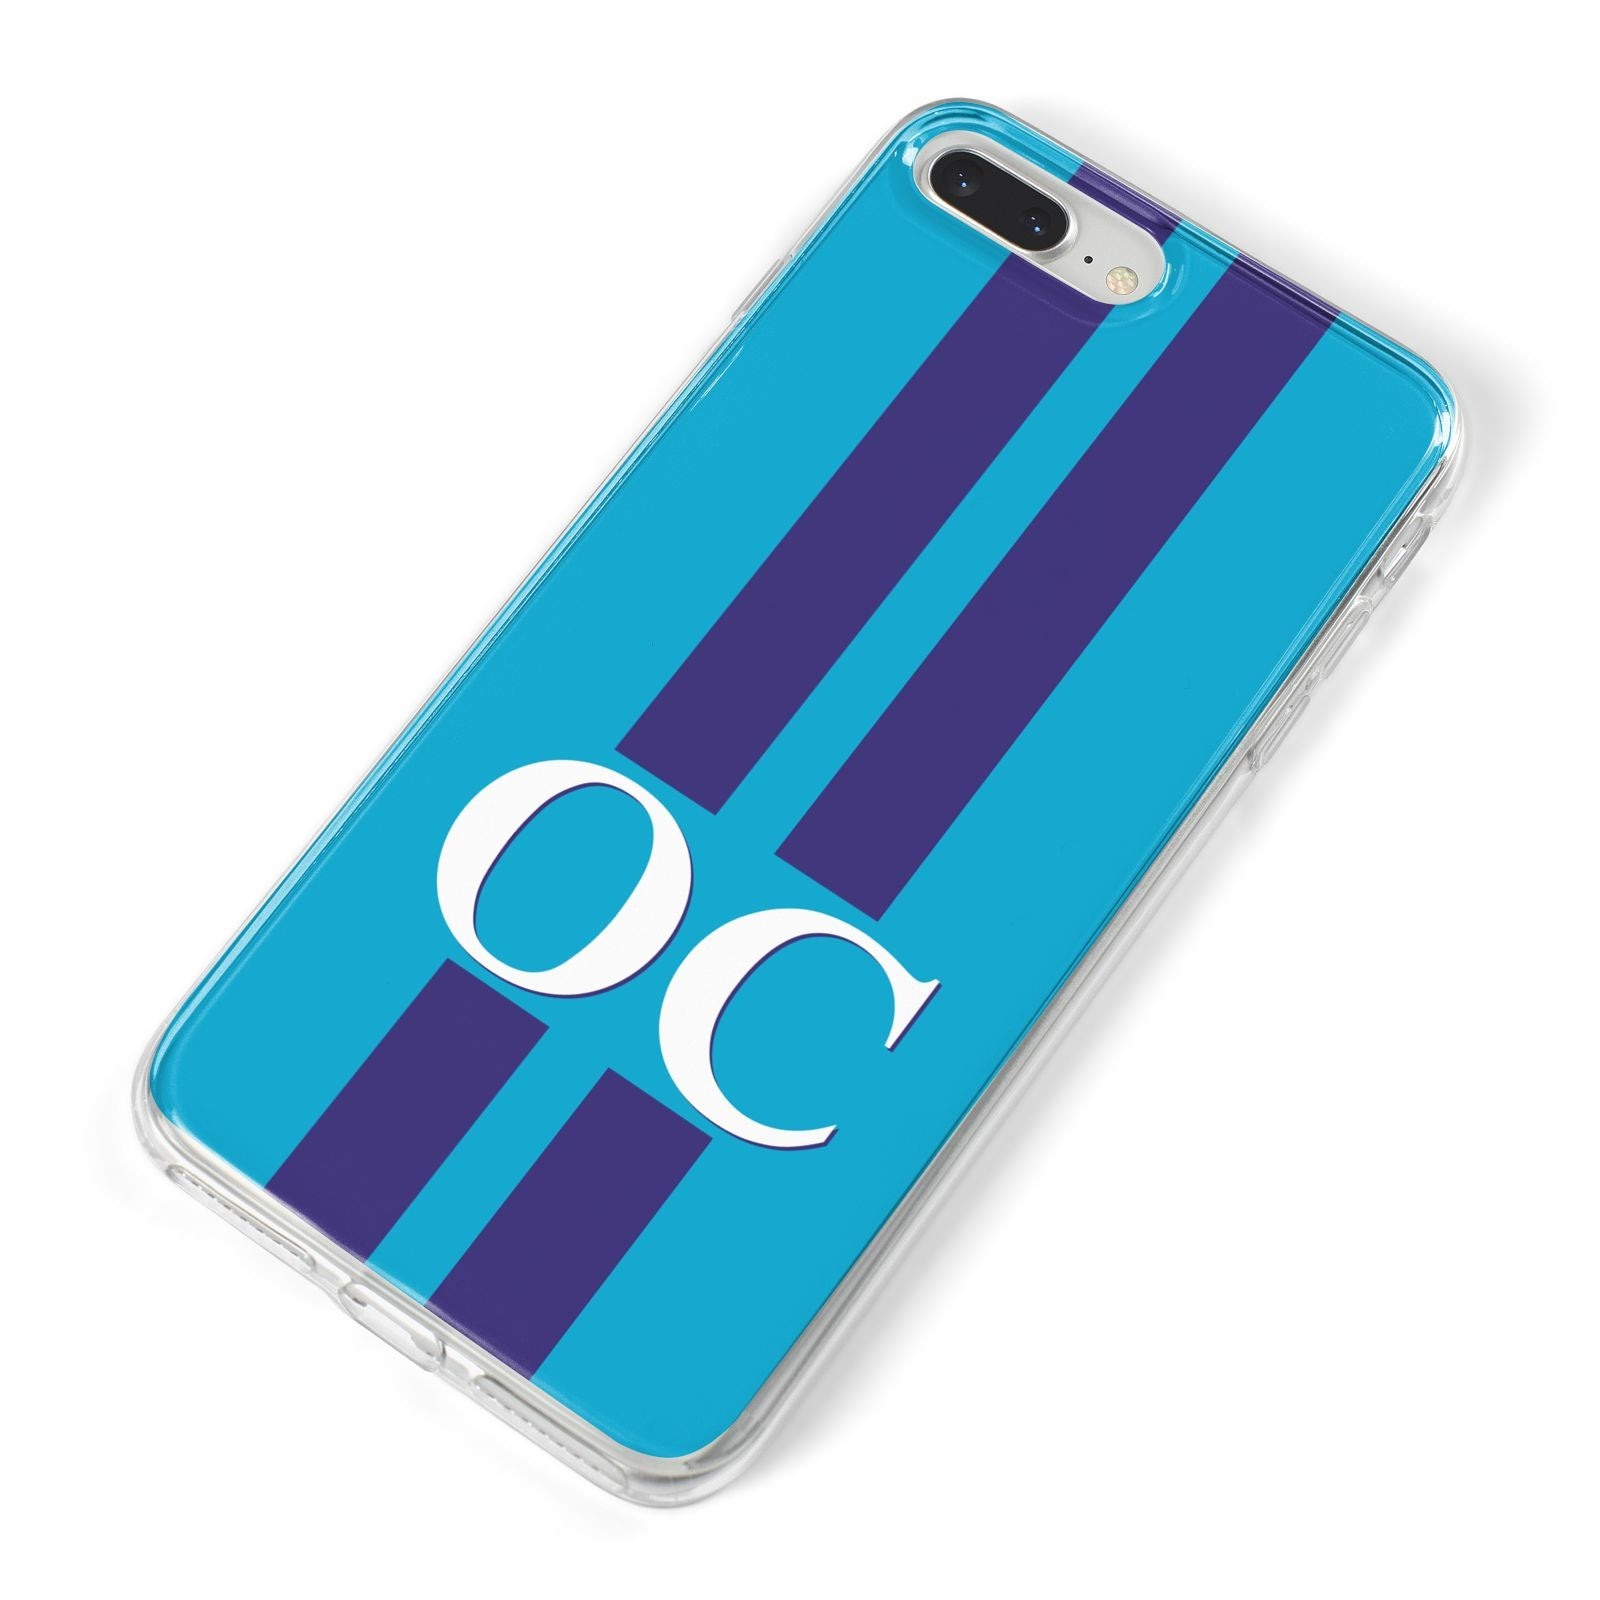 Turquoise Personalised iPhone 8 Plus Bumper Case on Silver iPhone Alternative Image